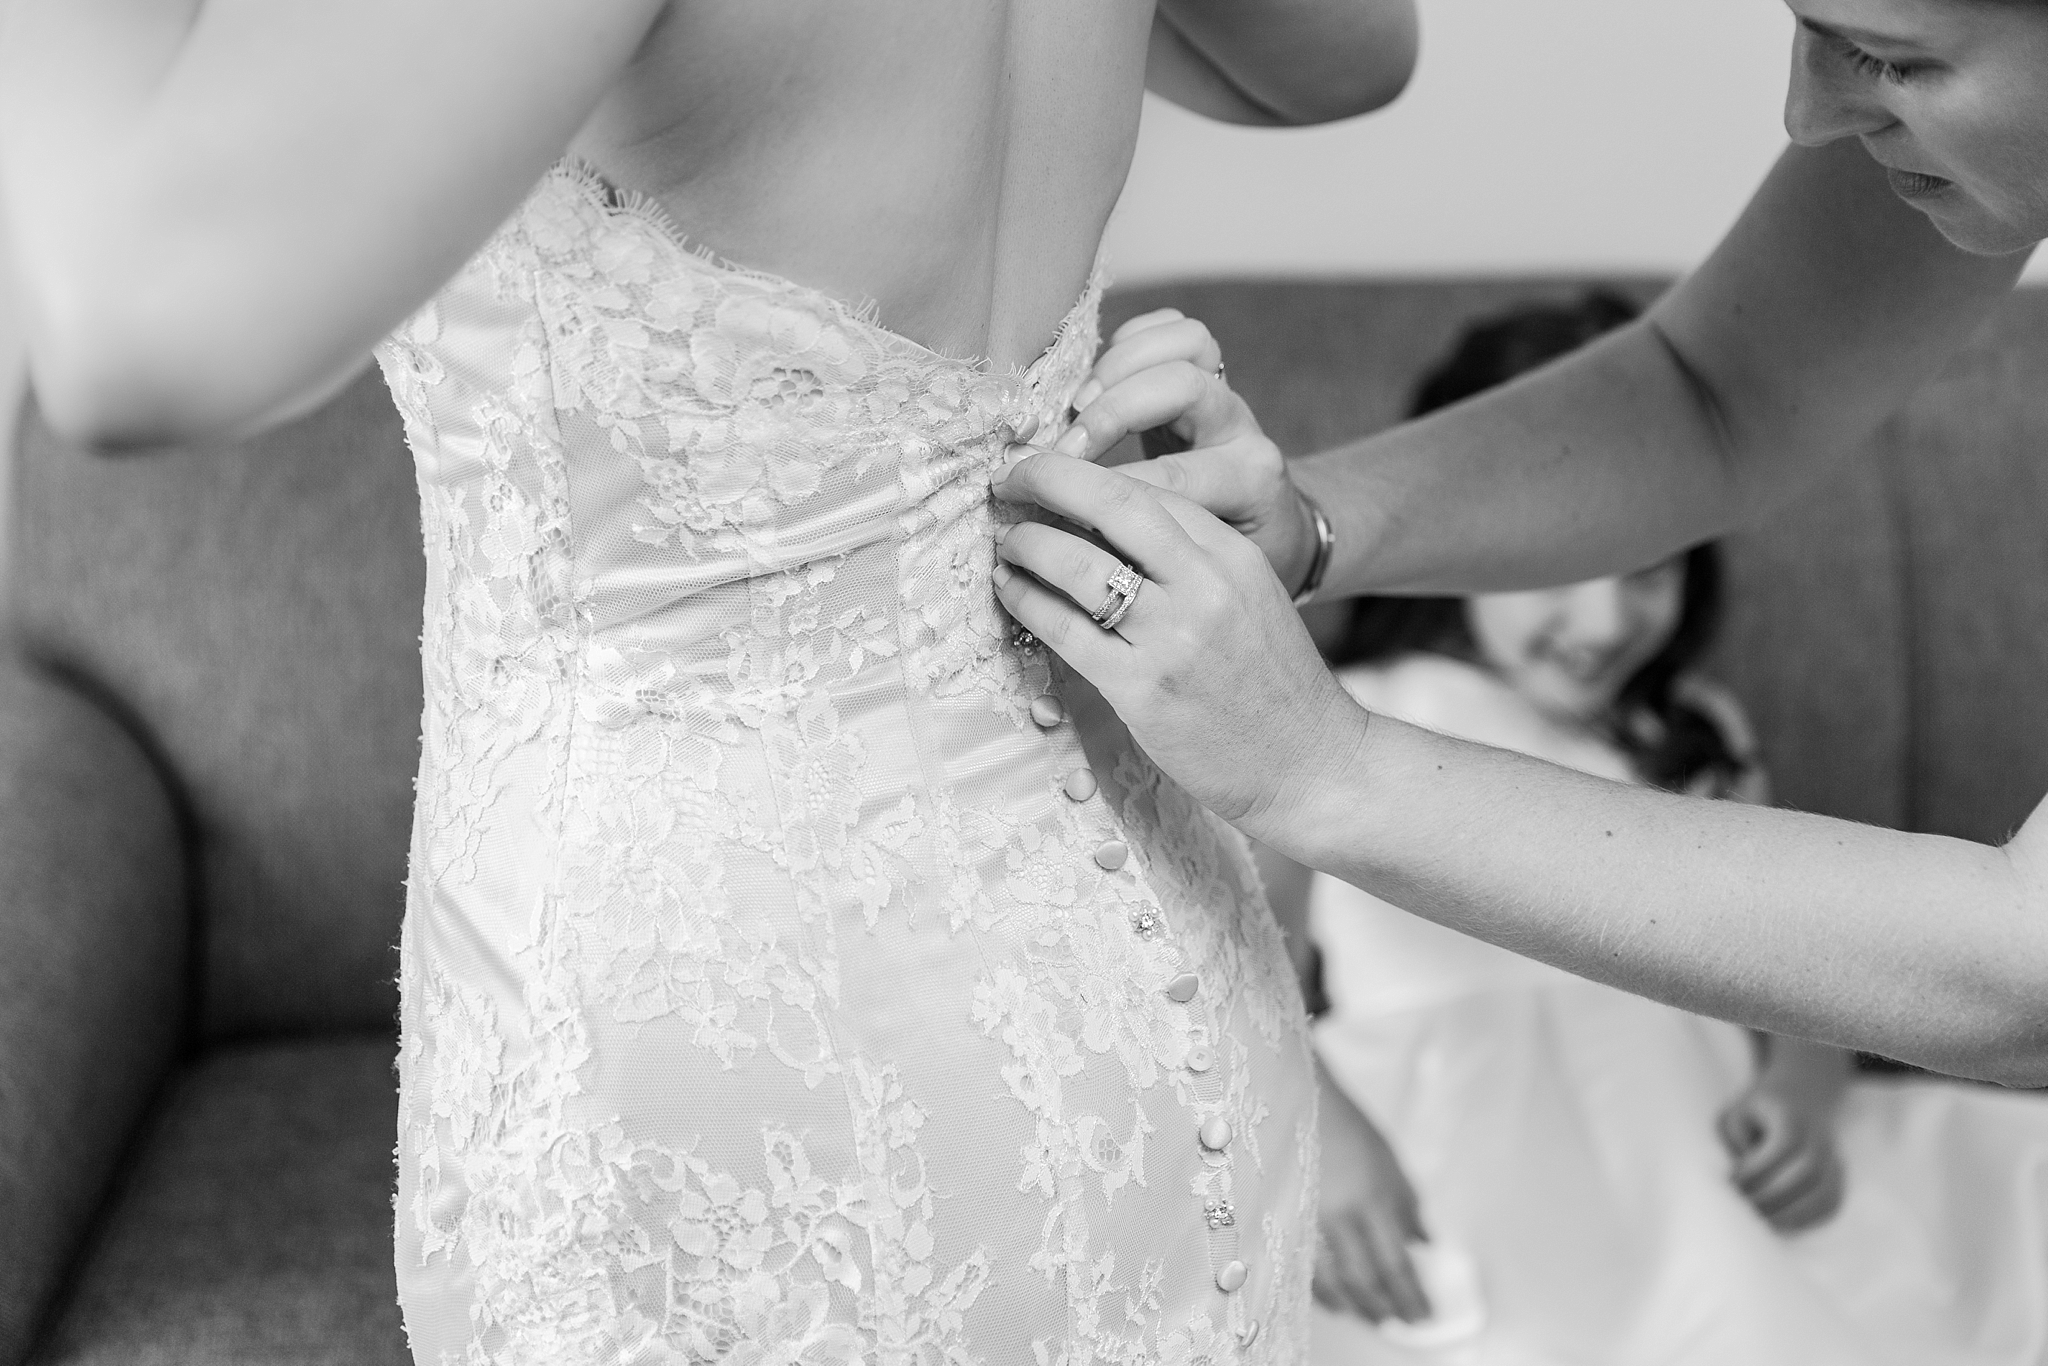 fun-candid-laid-back-wedding-photos-at-wellers-carriage-house-in-saline-michigan-and-at-the-eagle-crest-golf-resort-by-courtney-carolyn-photography_0004.jpg